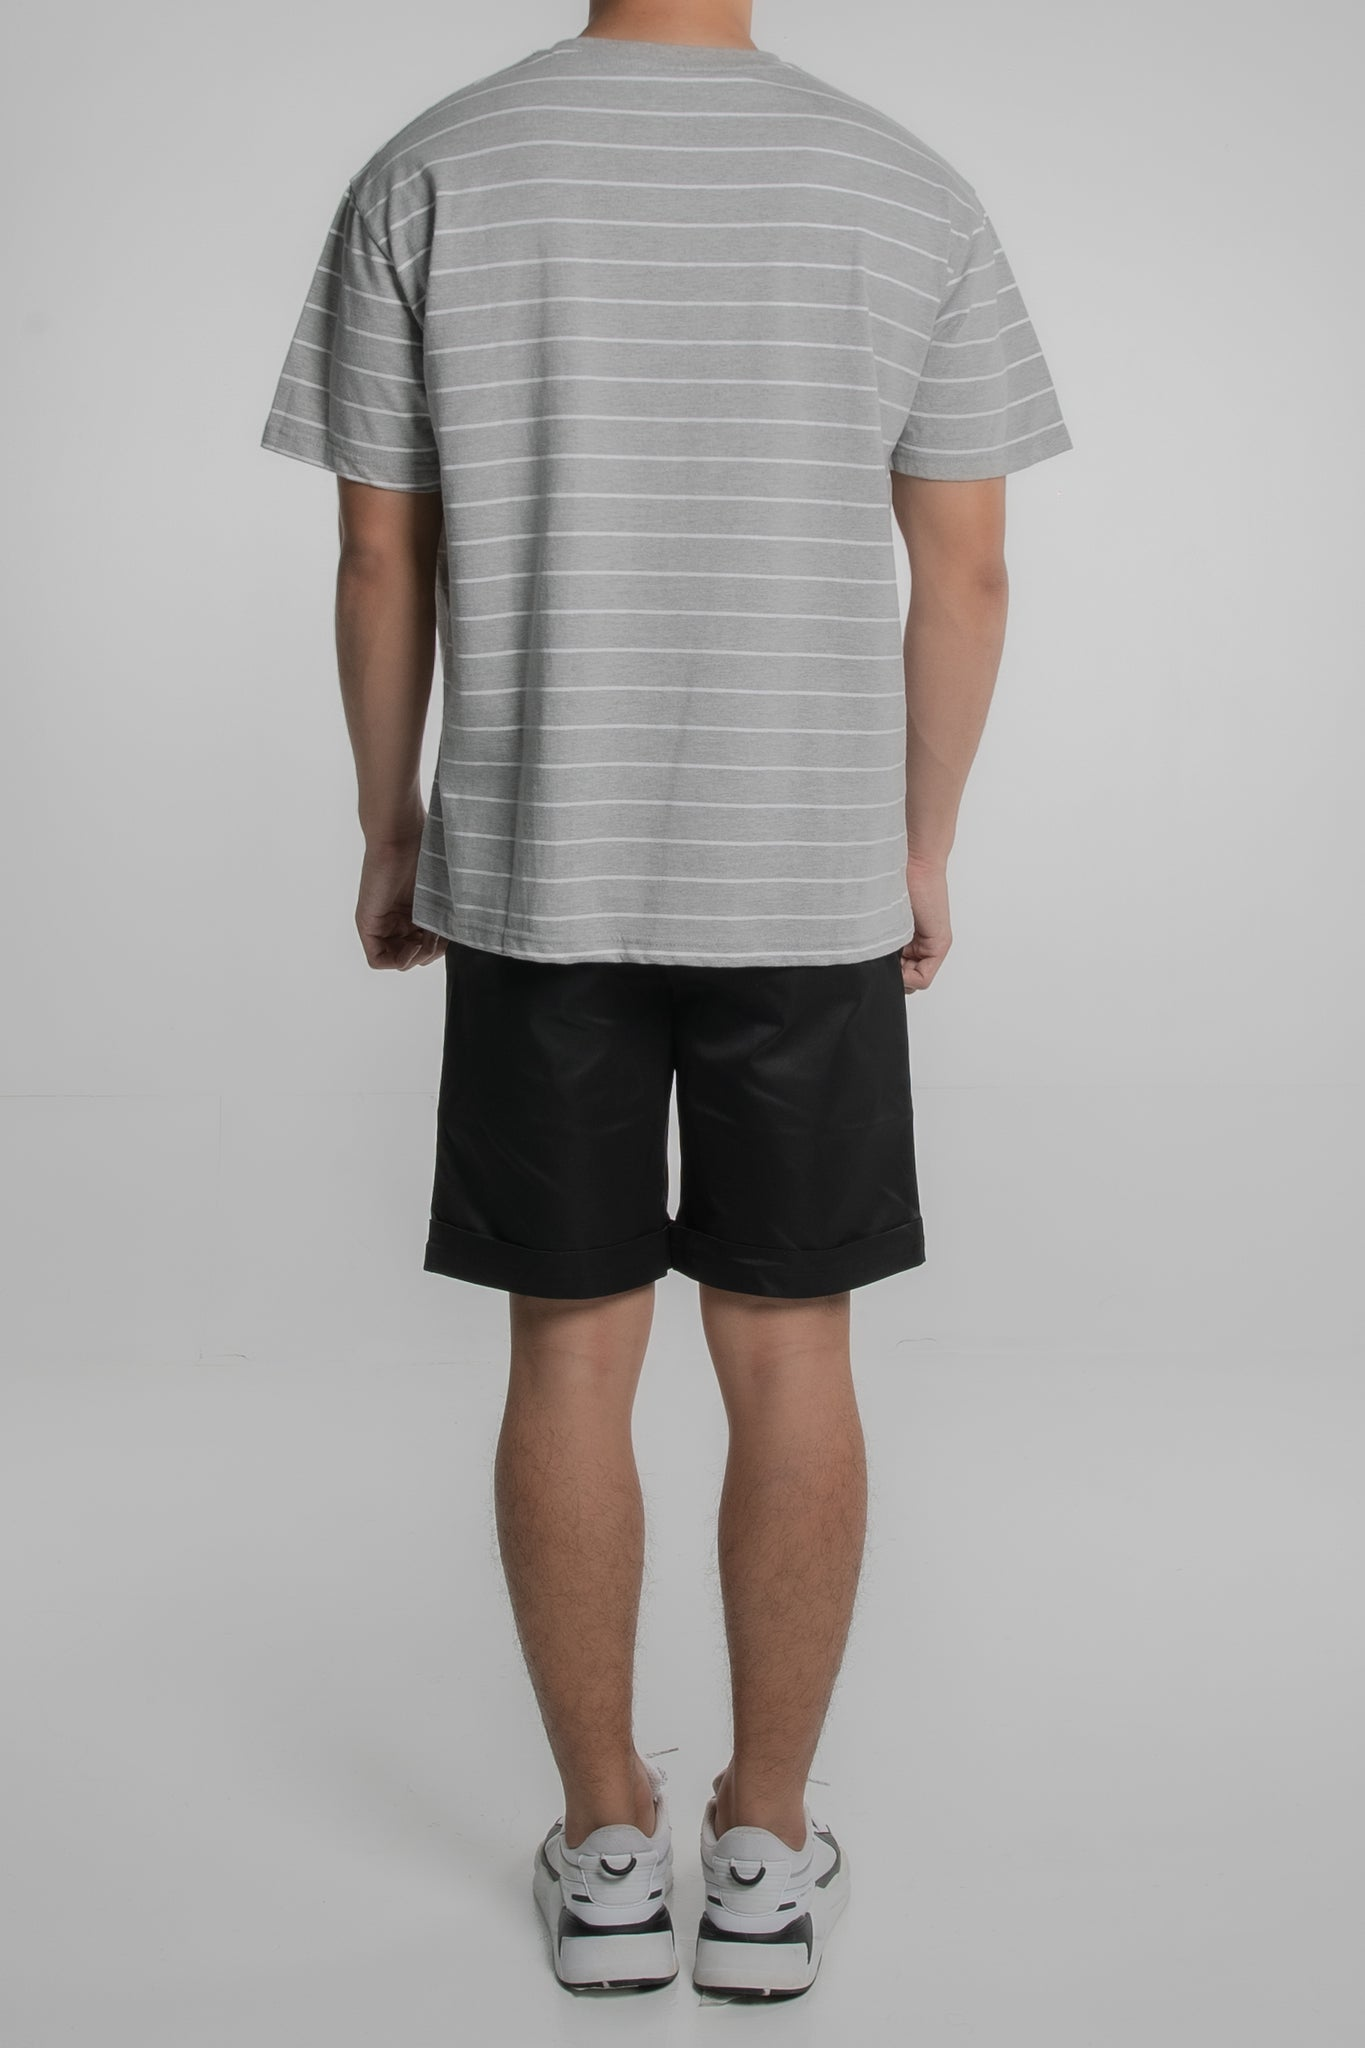 3P Horizontal Striped T-Shirt (Grey)